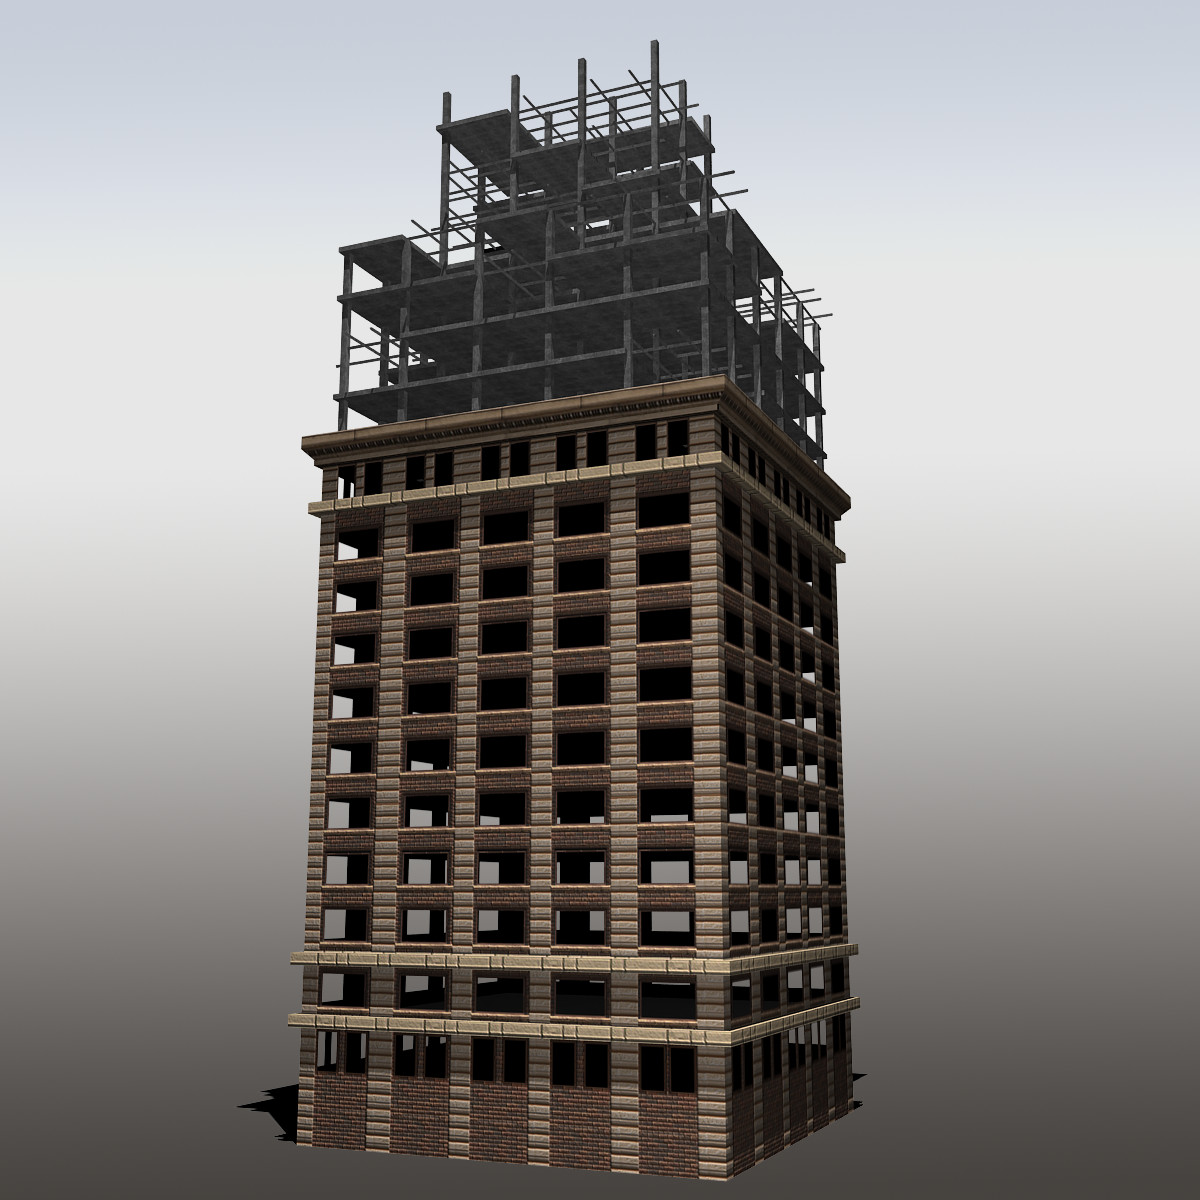 3d modeled unfinished building